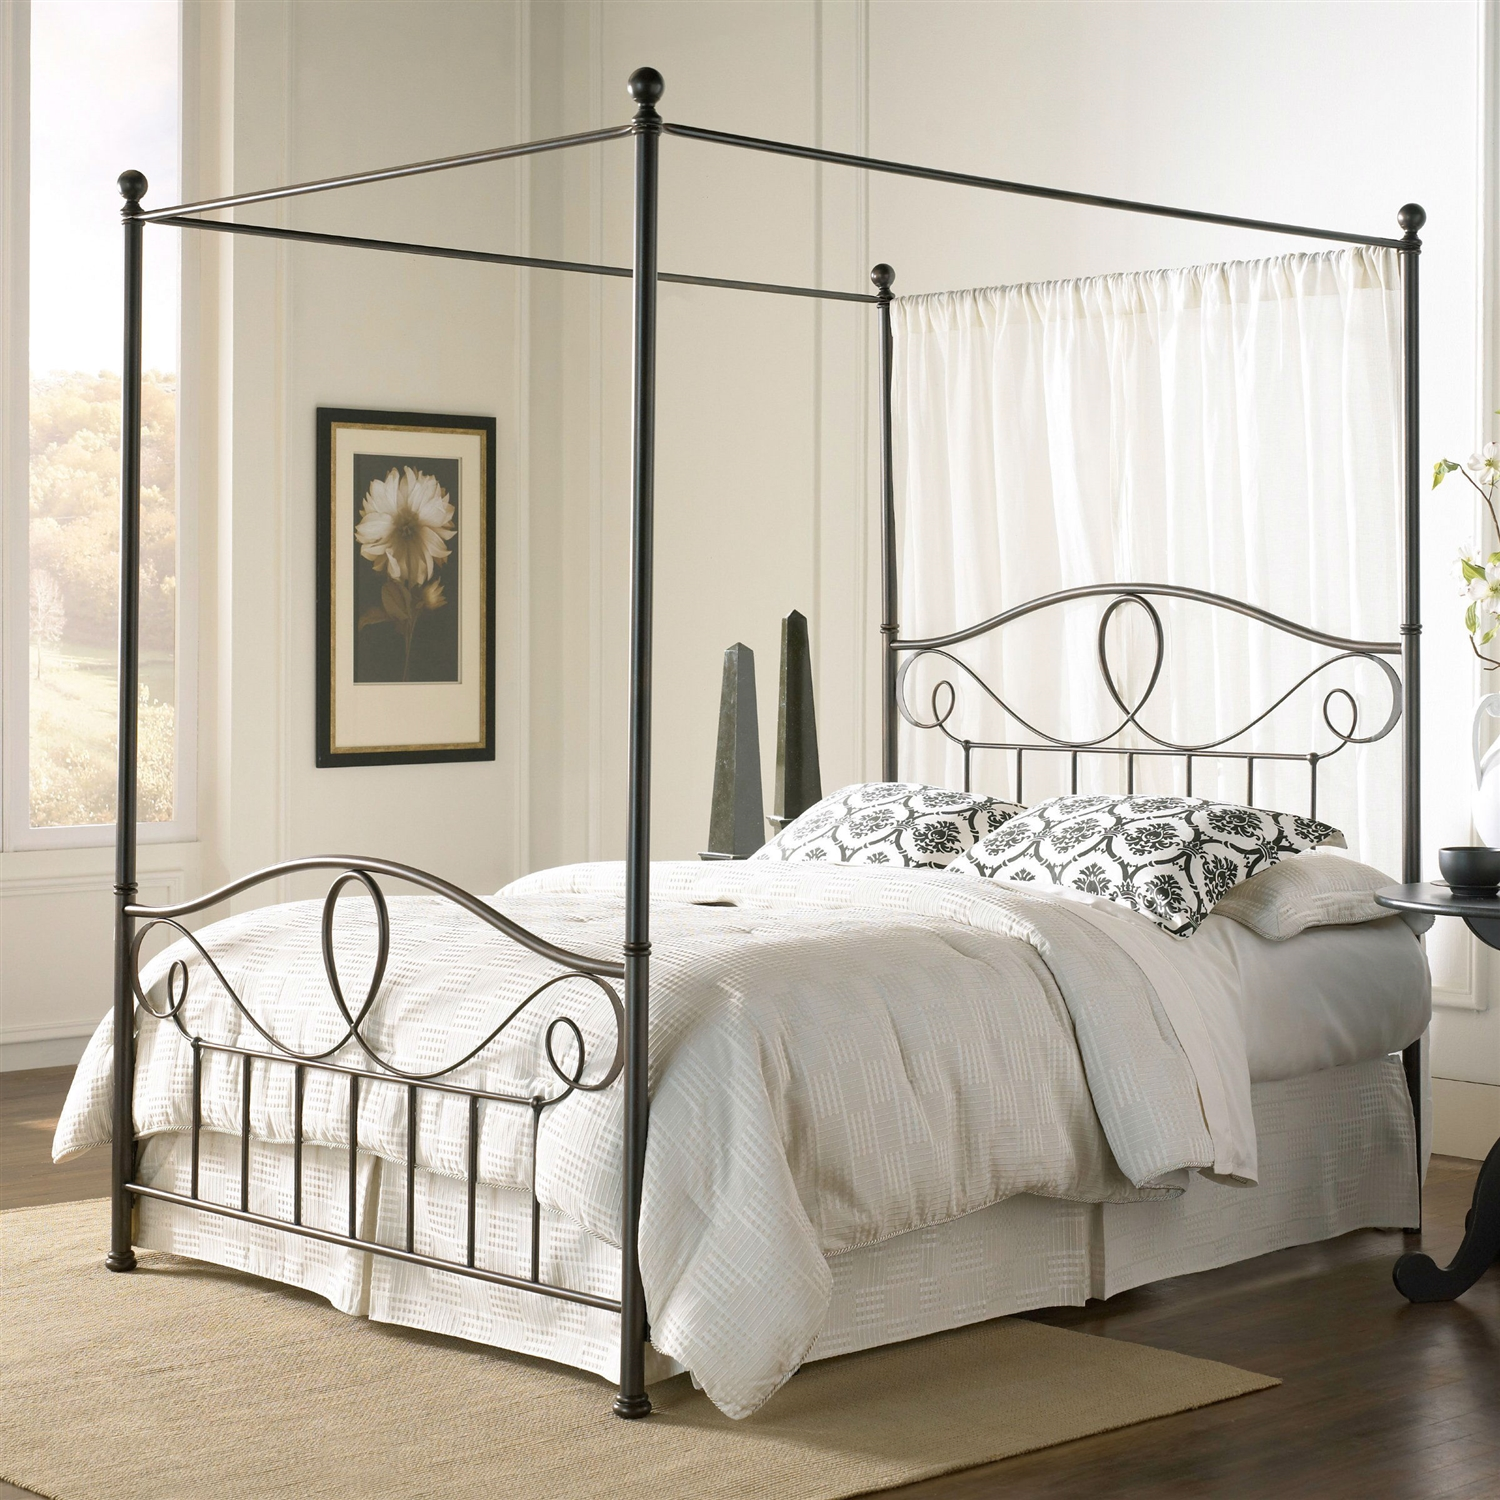 Queen Size Complete Metal Canopy Bed With Scroll Work And Ball Finials